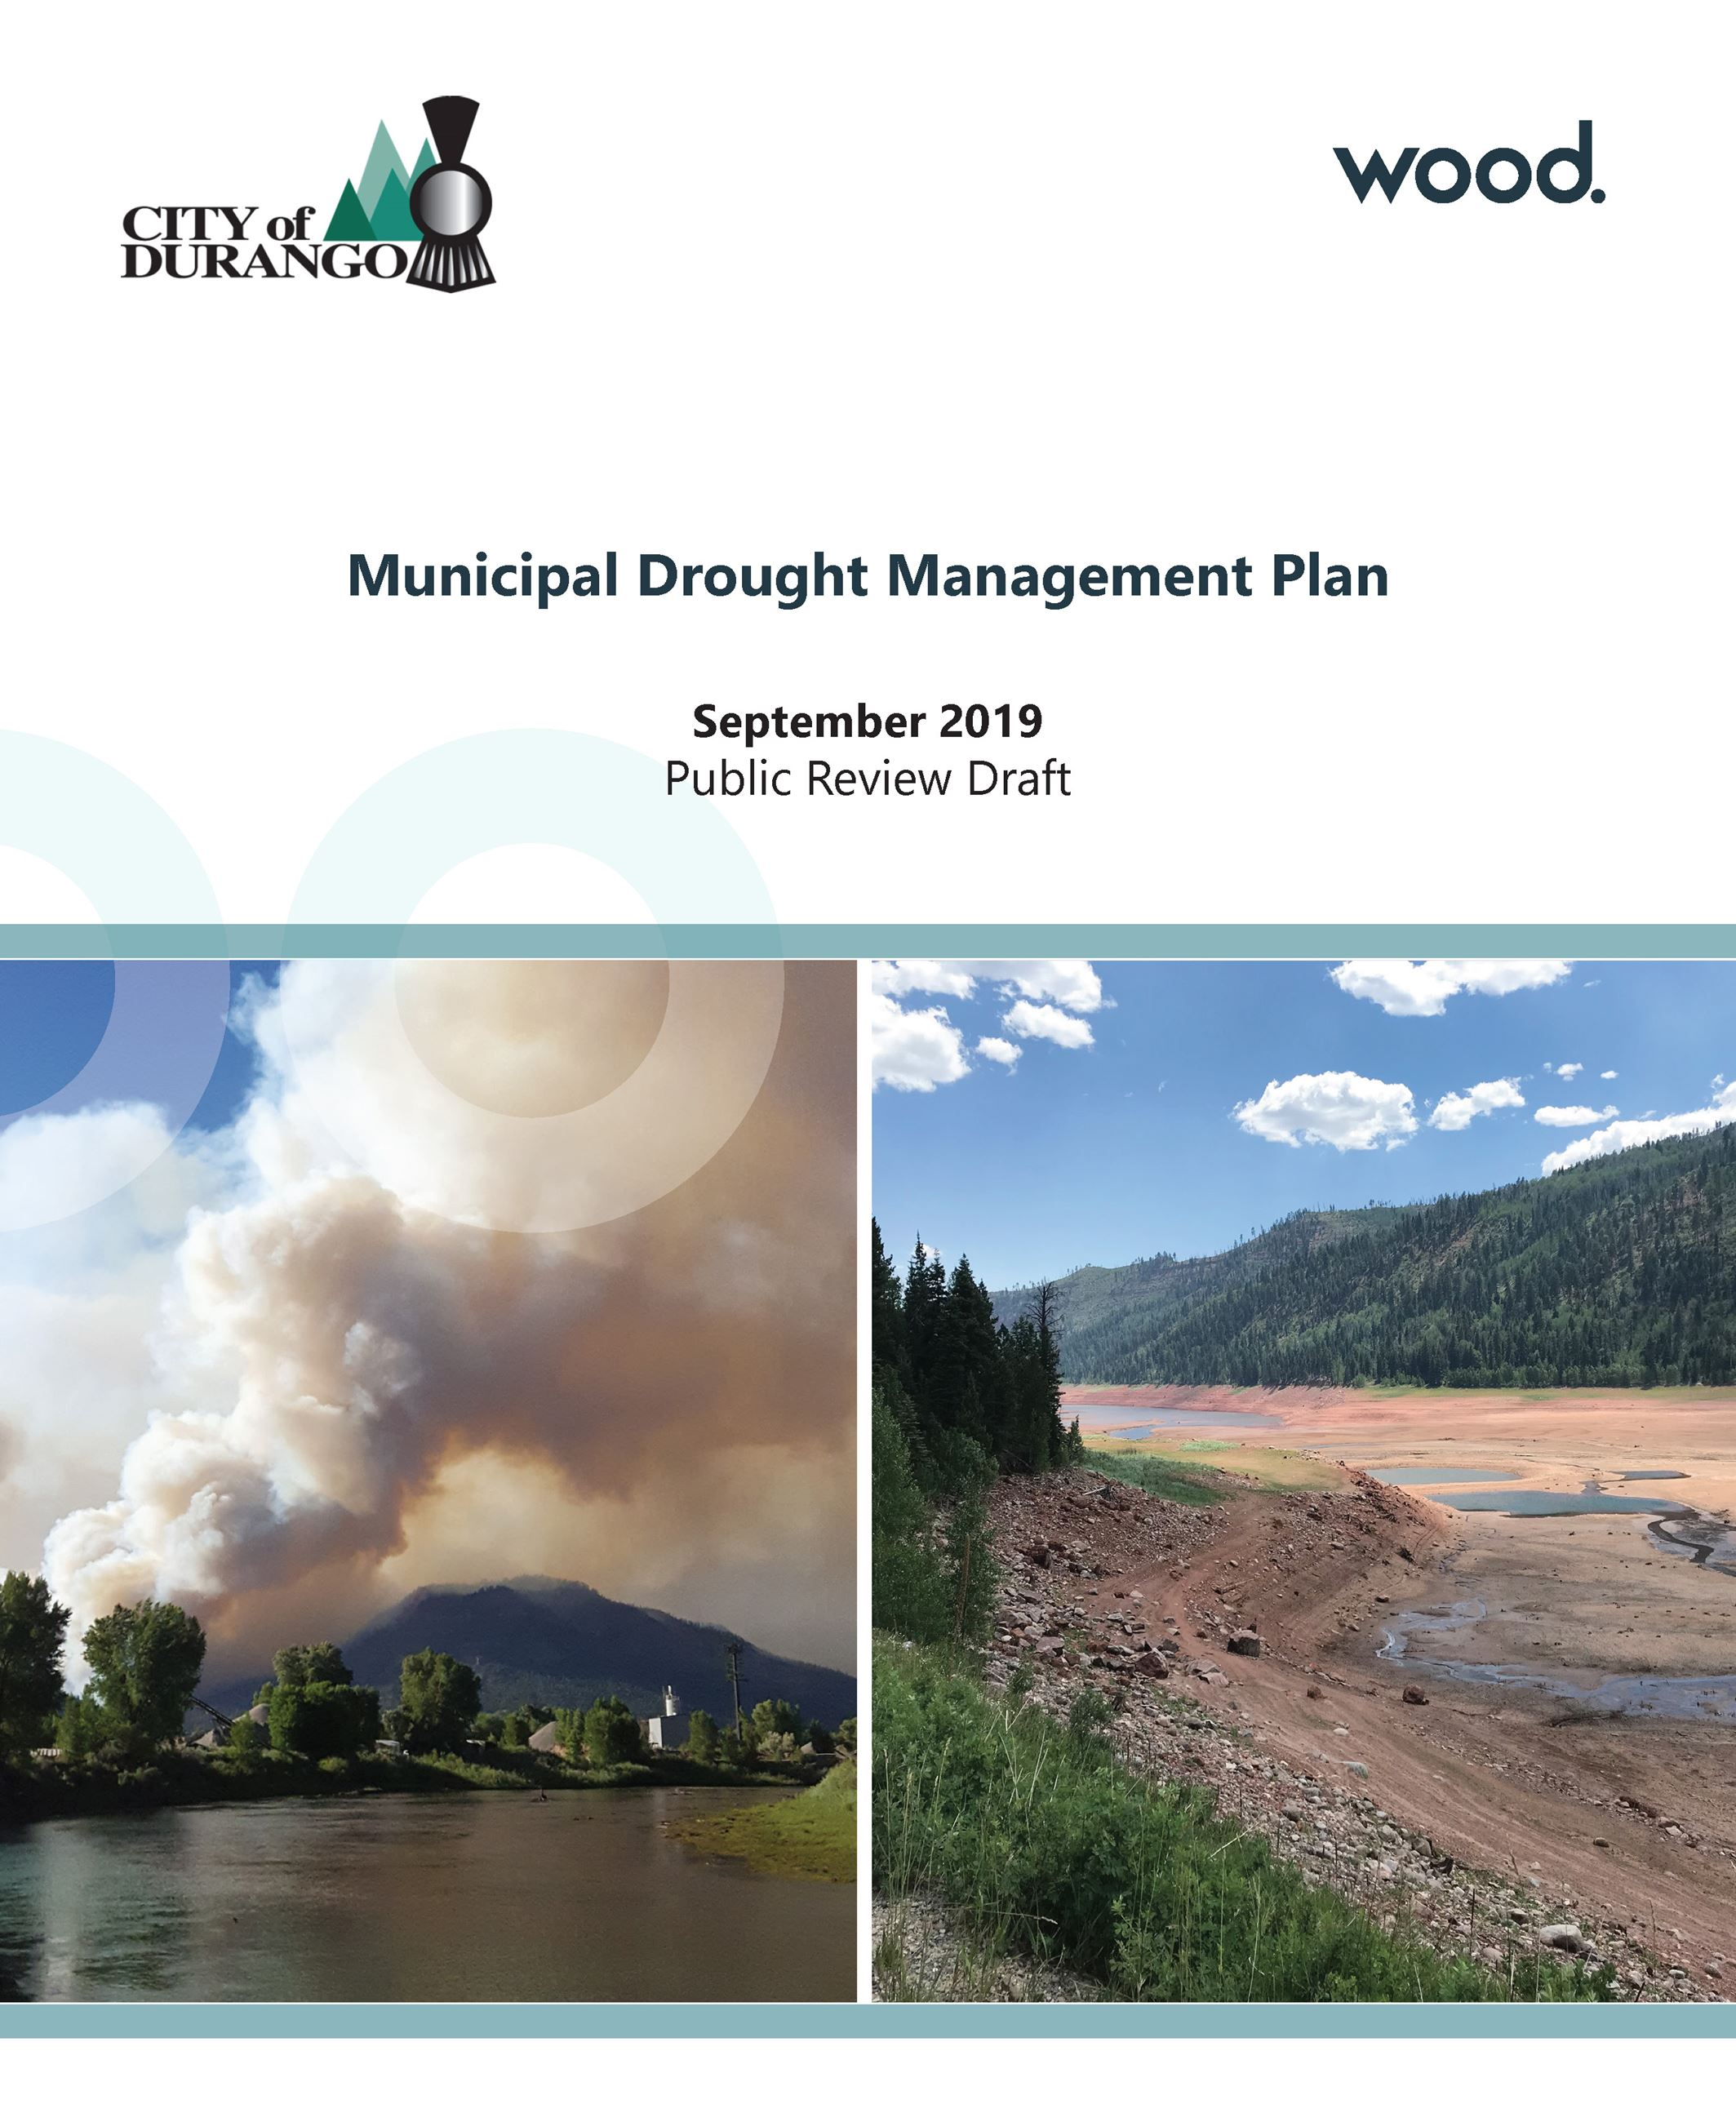 Municipal Drought Management Plan Cover Page